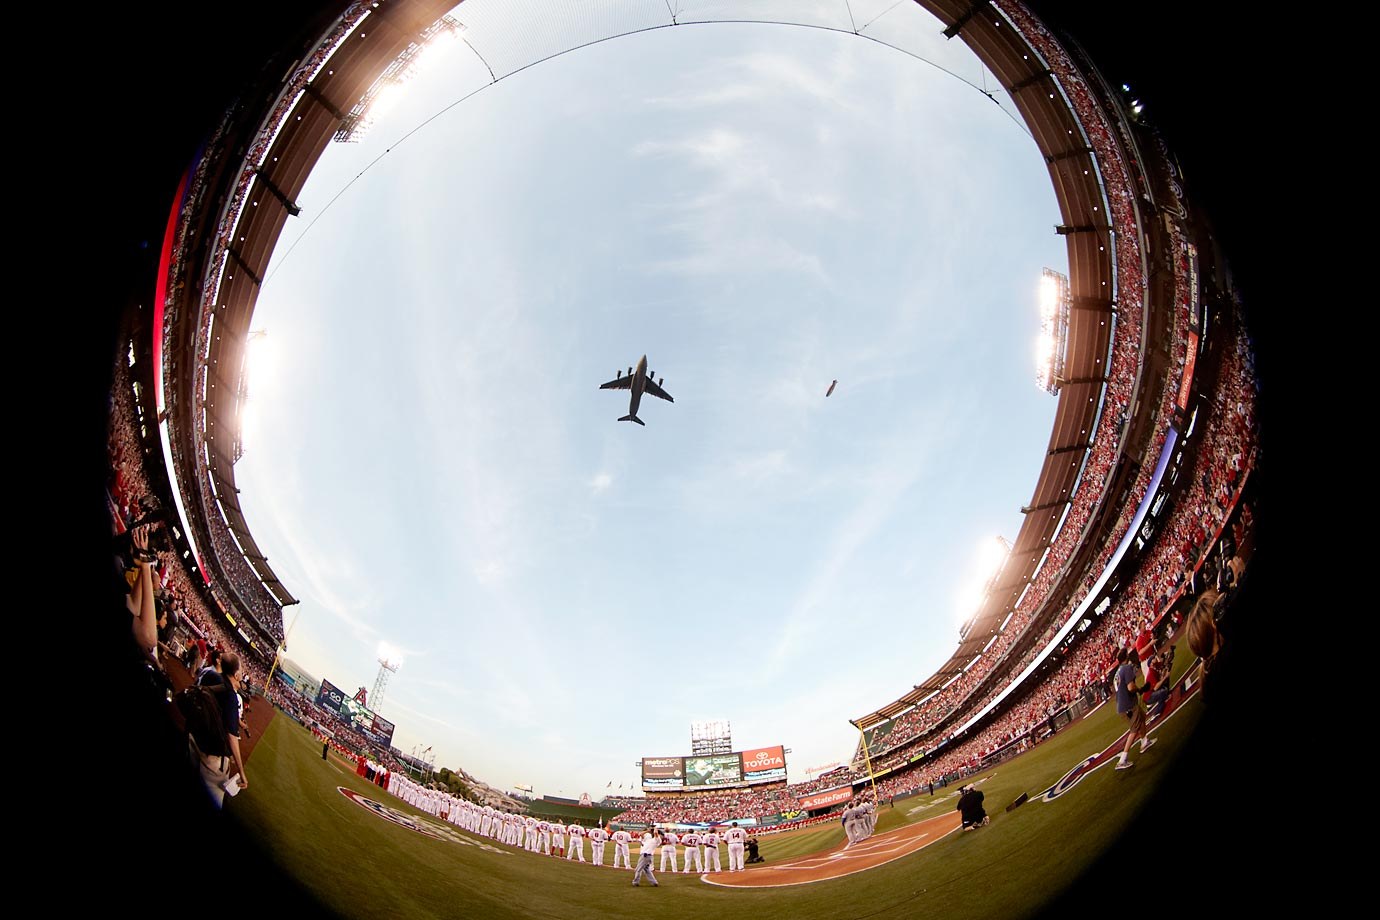 A U.S. Air Force C-17 Globemaster III airplane flyover before a 2012 Los Angeles Angels of Anaheim game against the Kansas City Royals.